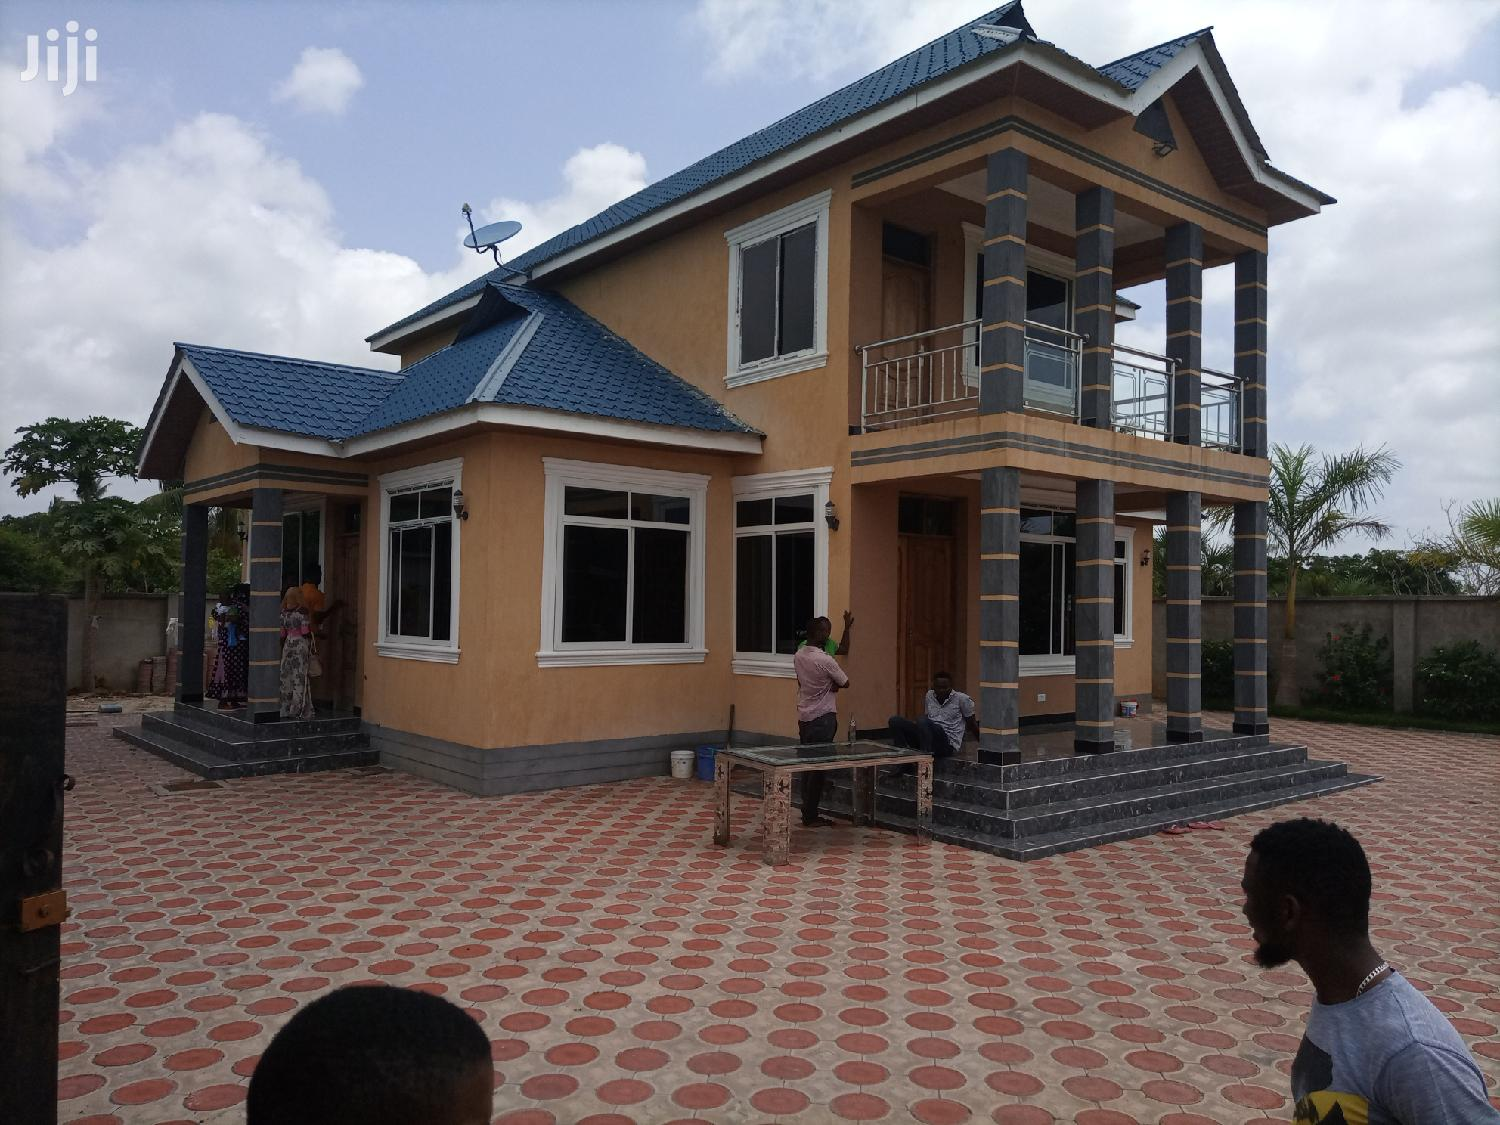 4 Bedroom House In Kigamboni For Sale